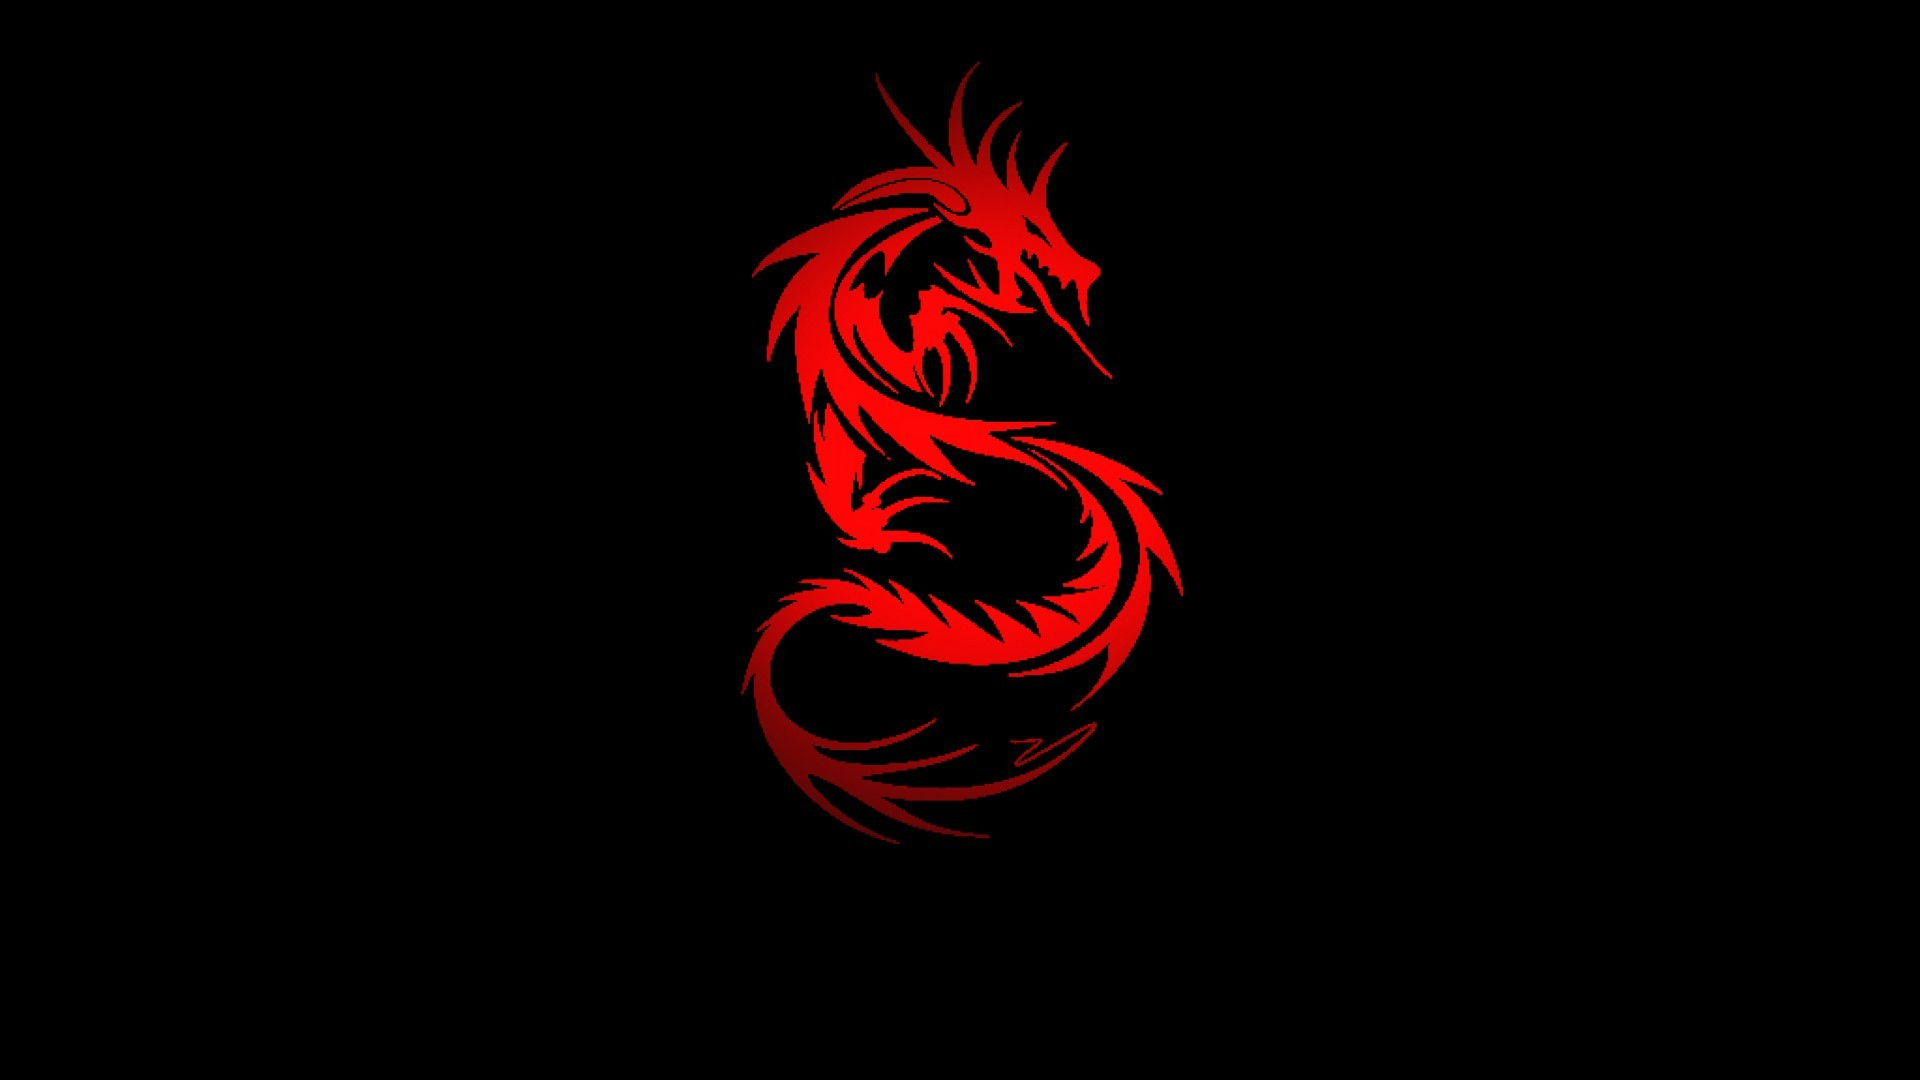 Dragon HD Wallpaper x ID